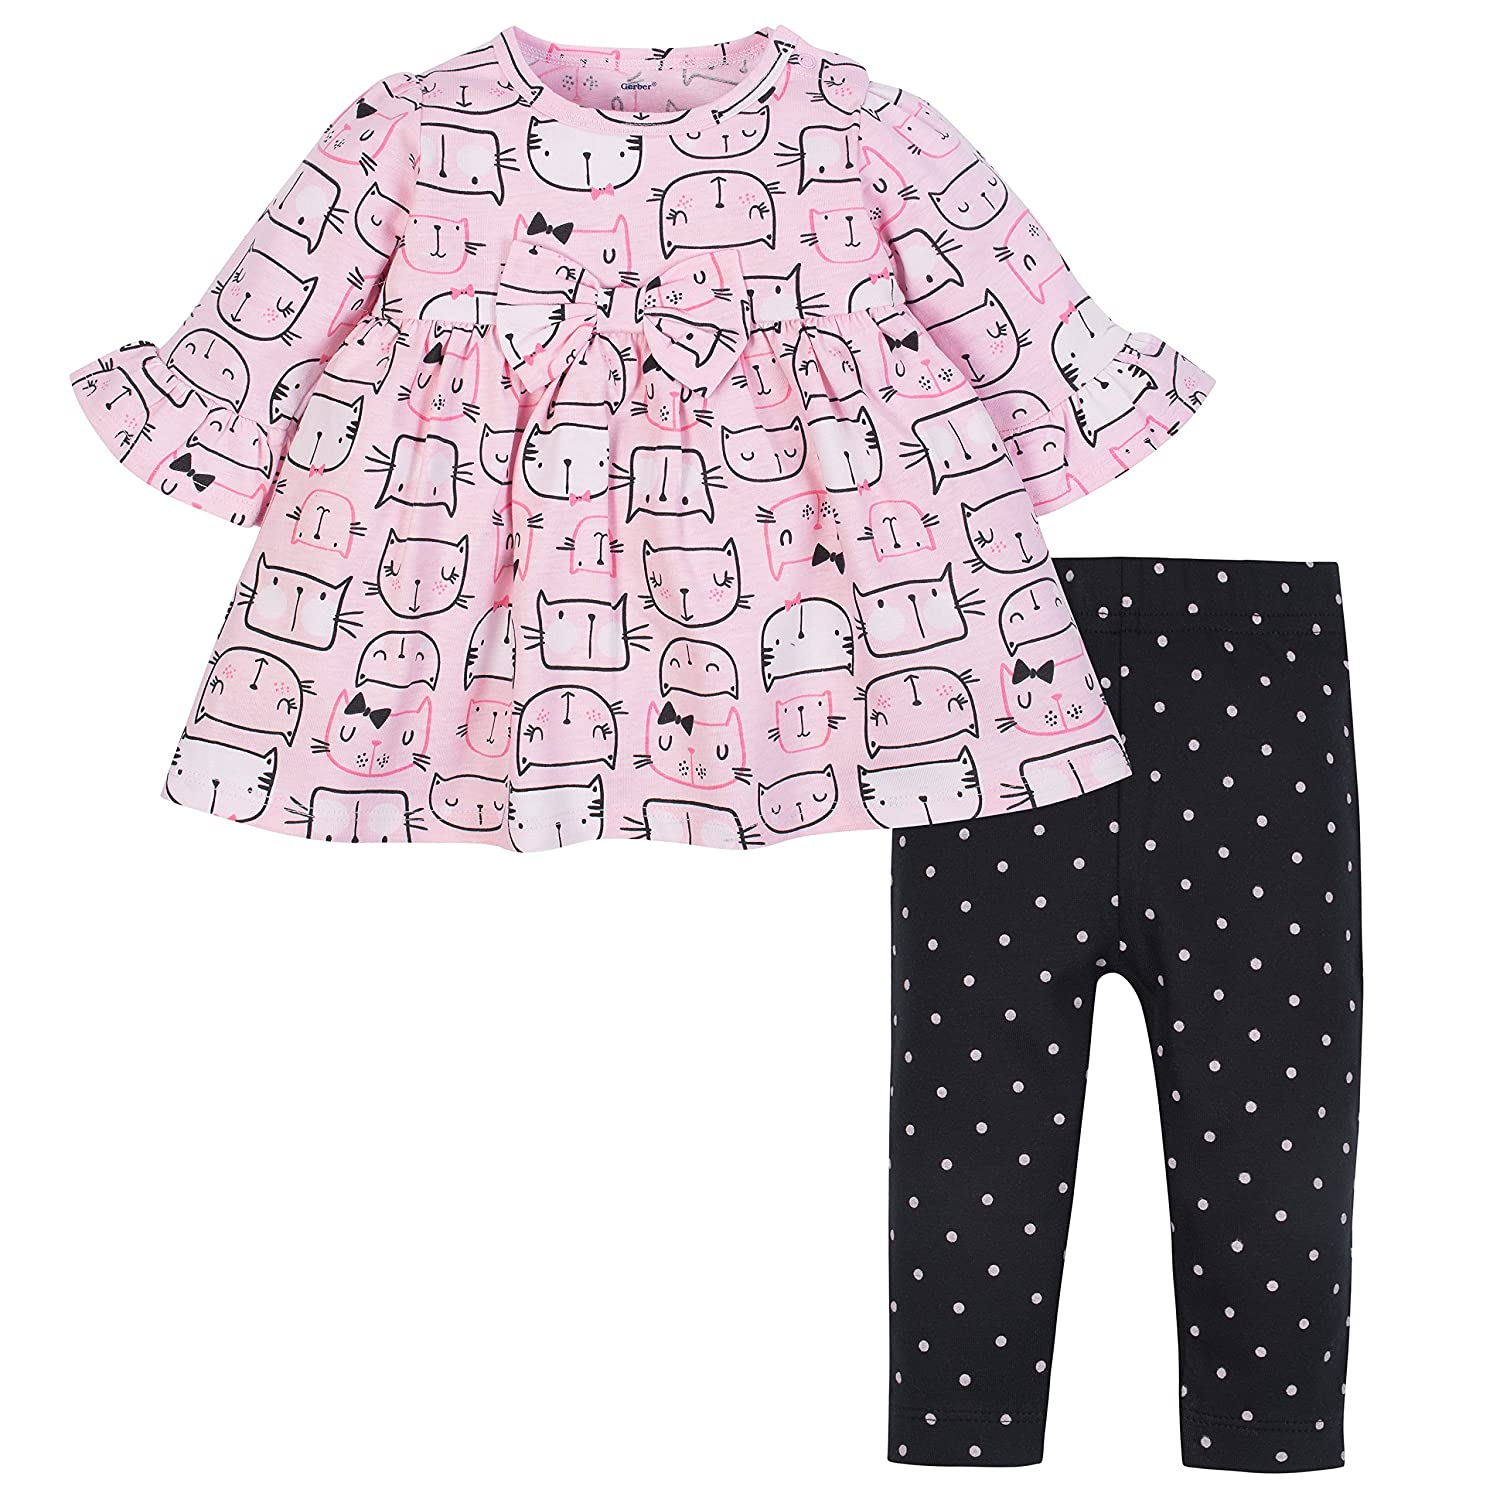 Gerber Baby Girls' Dress and Legging Set Gerber Children' s Apparel 93699216A